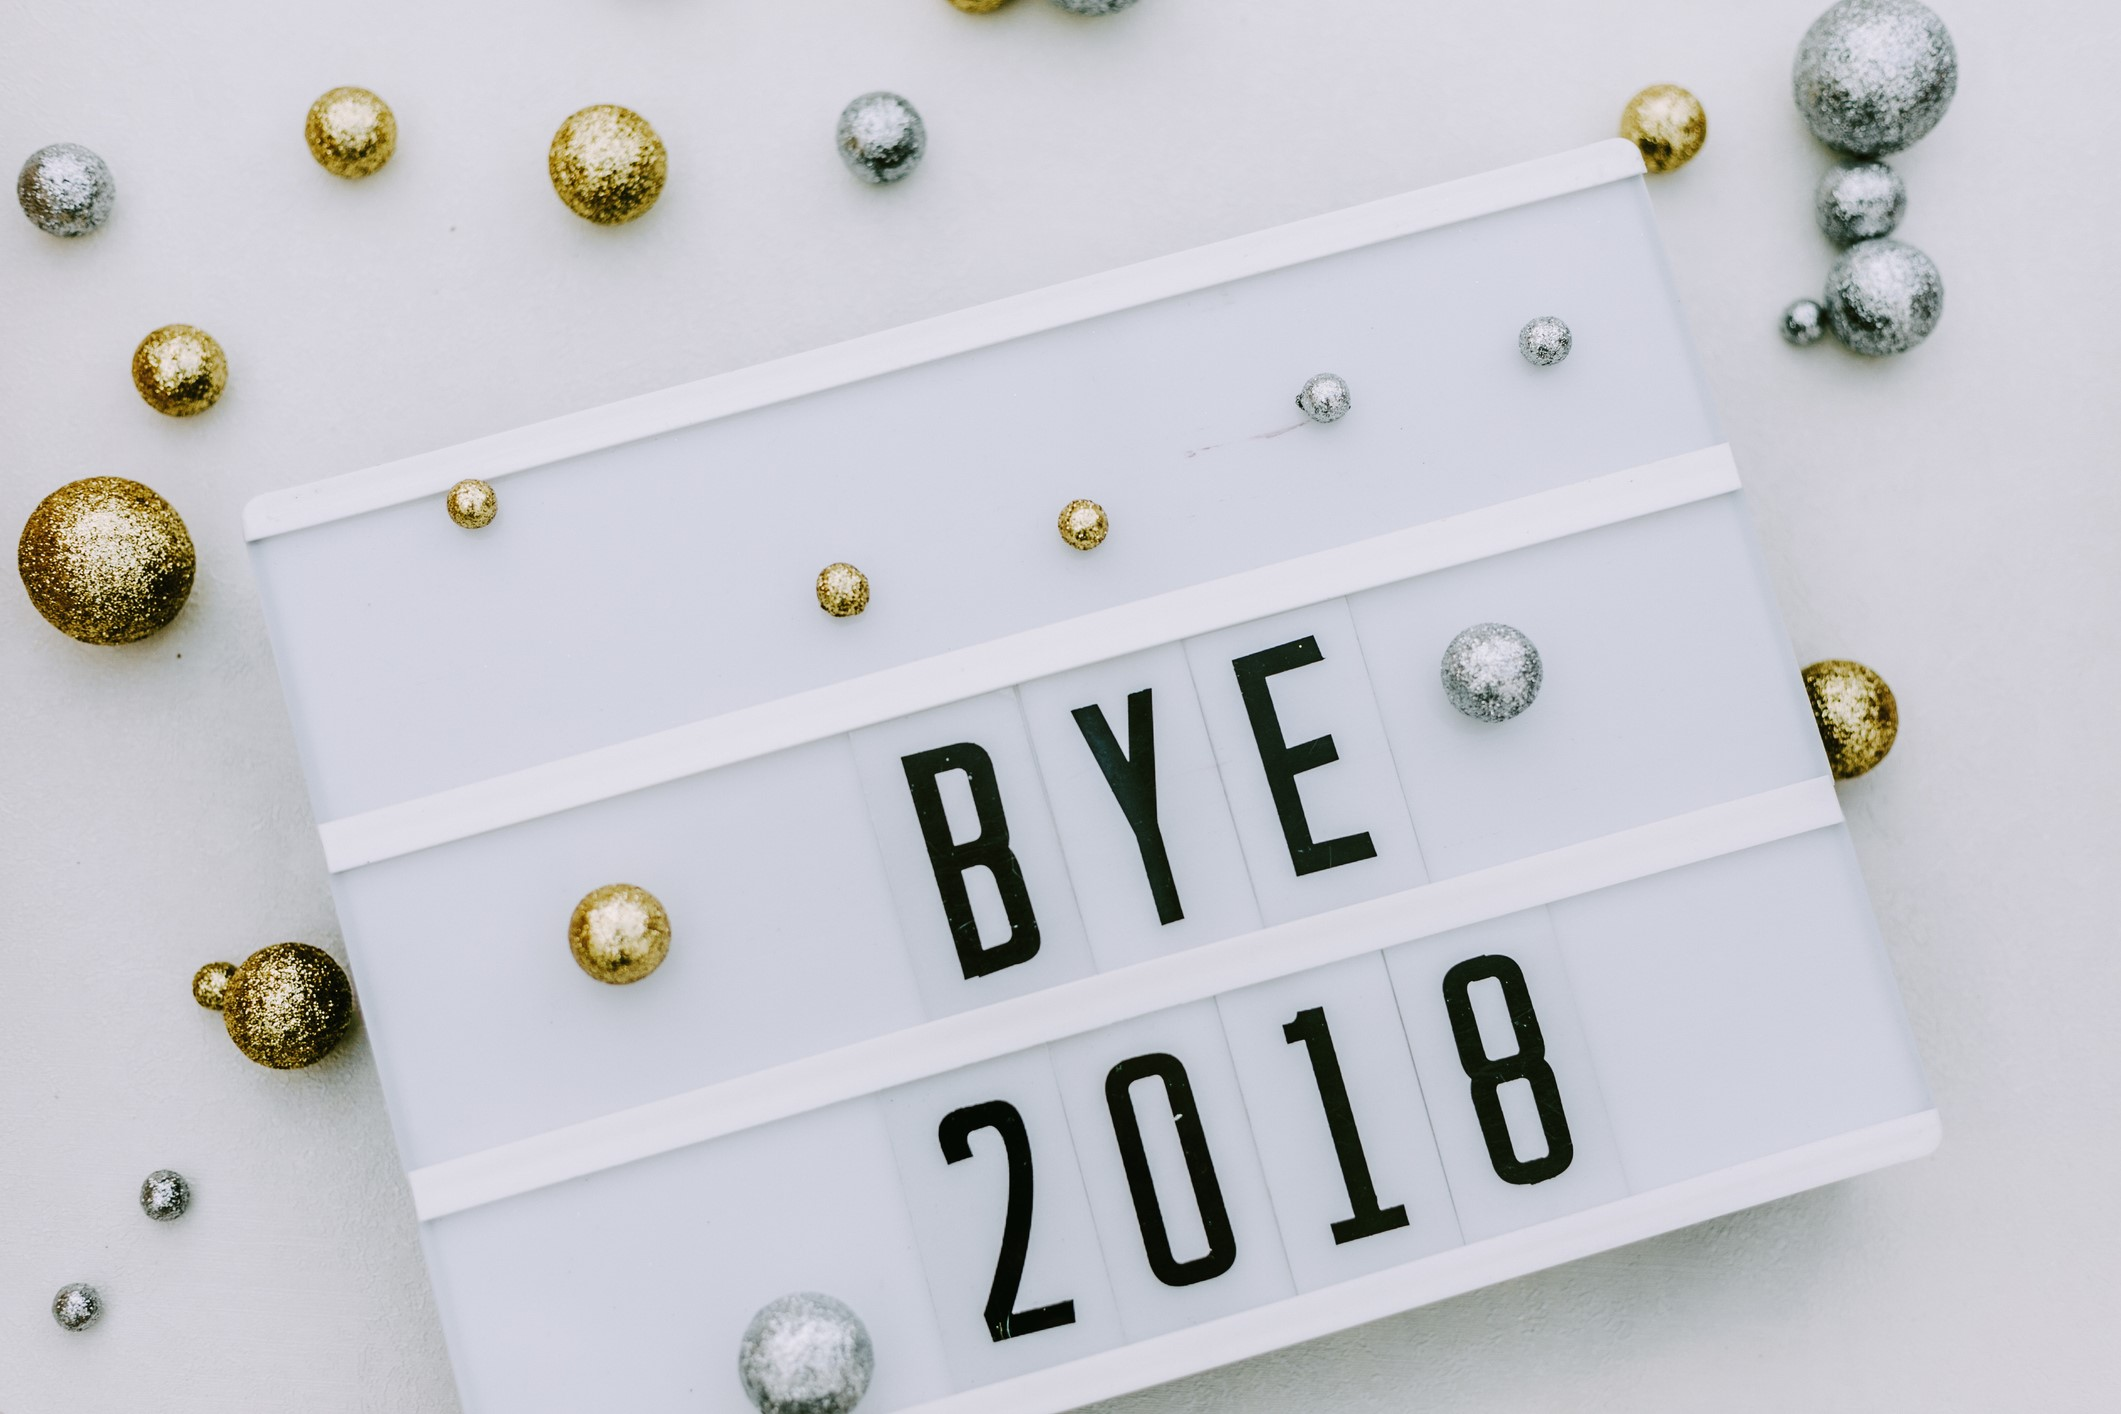 Bye Bye 2018 – Our top 5 posts